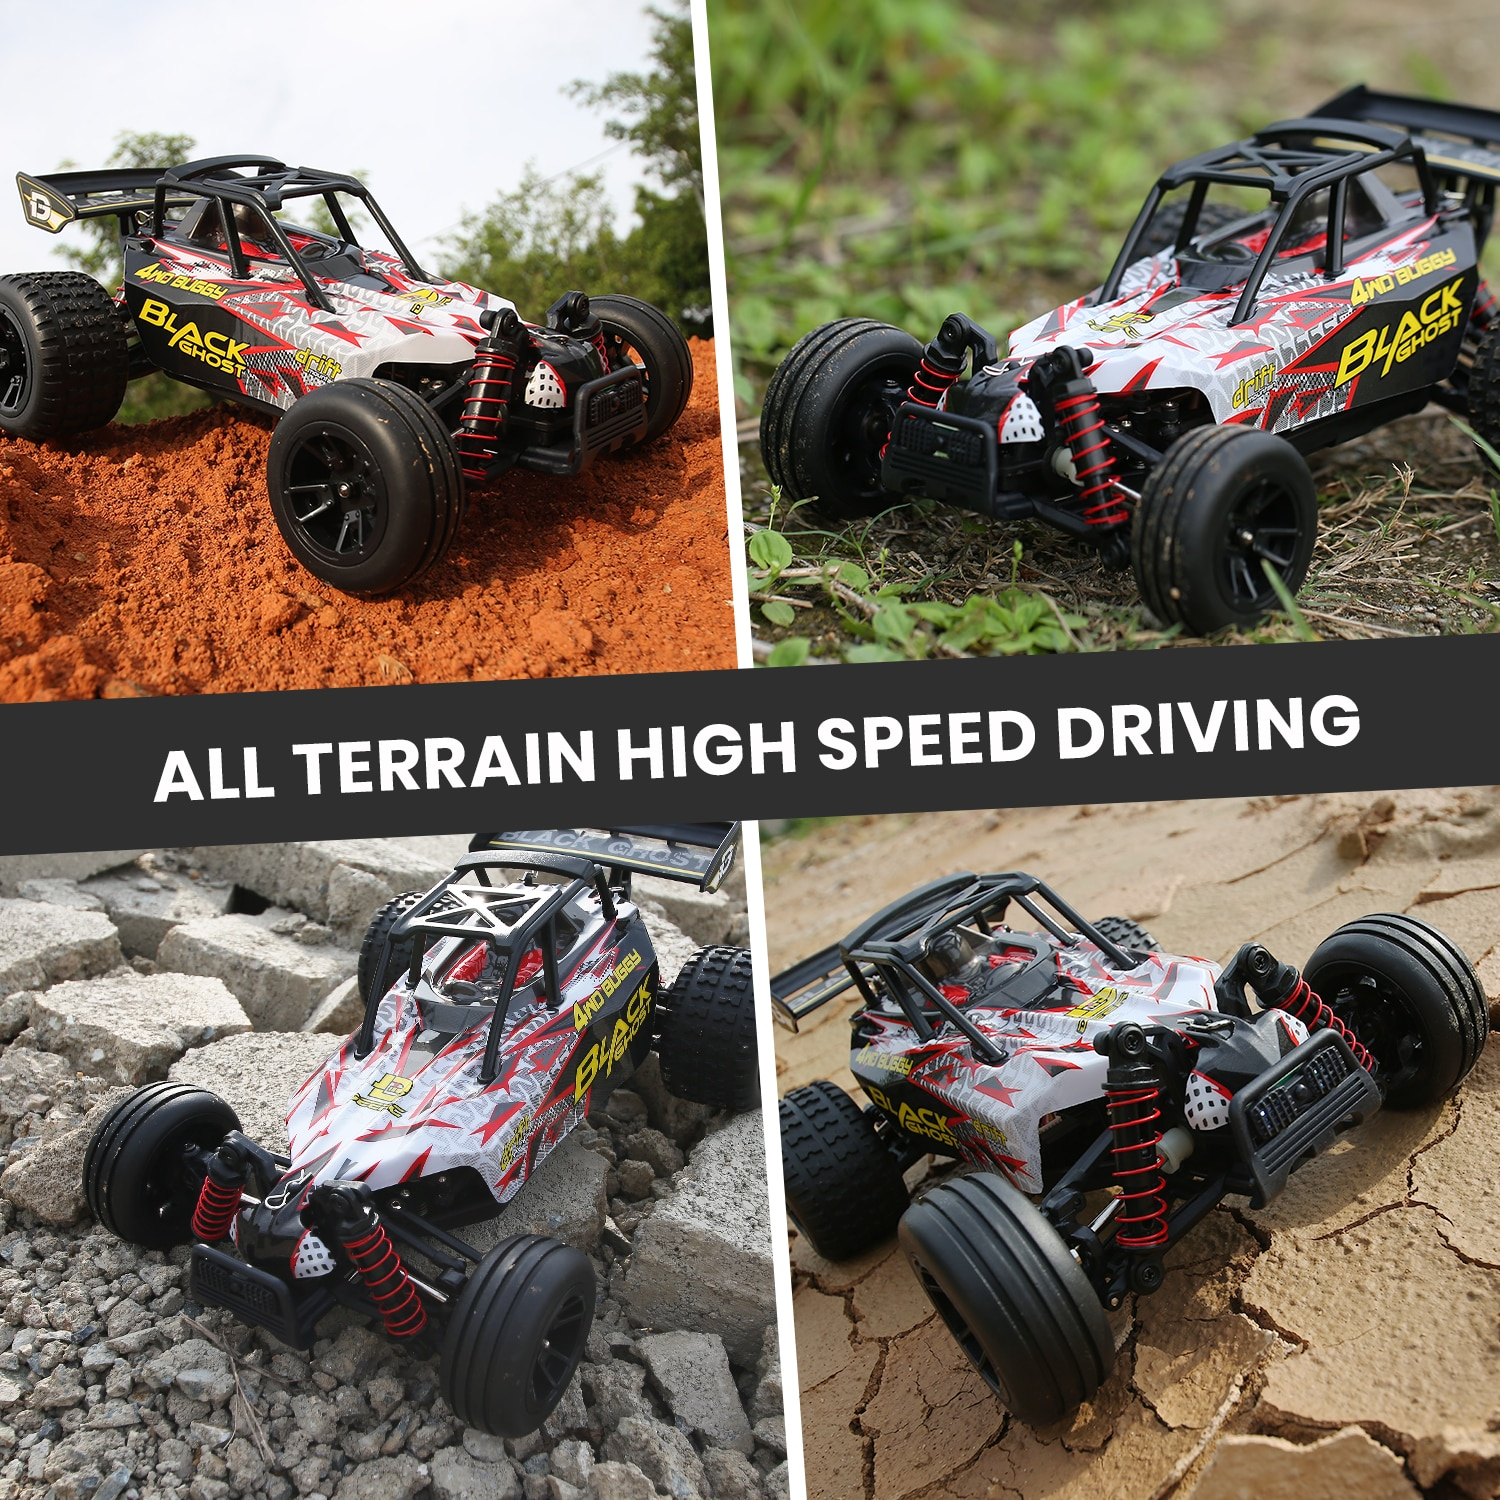 DEERC 9305E RC Cars High Speed Remote Control Car for Adults Kids Boys,1:18 Scale 25+ MPH 4WD All Terrain Off Road Monster Truck enlarge